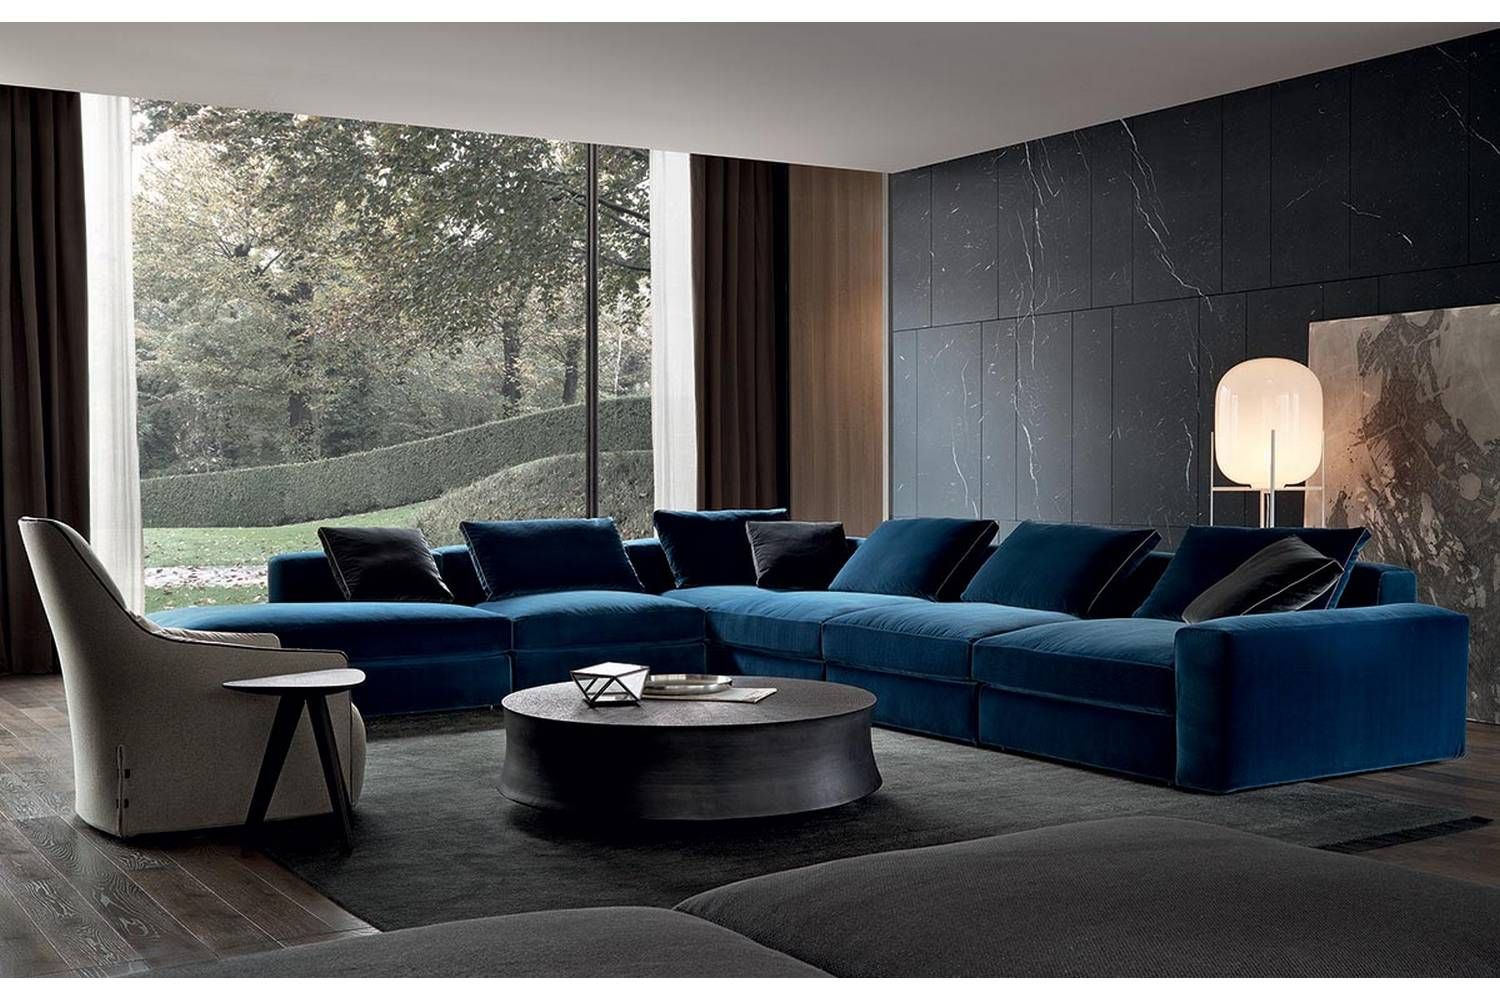 Dune sofa by carlo colombo for poliform living room pinterest dune sofa by carlo colombo for poliform parisarafo Gallery